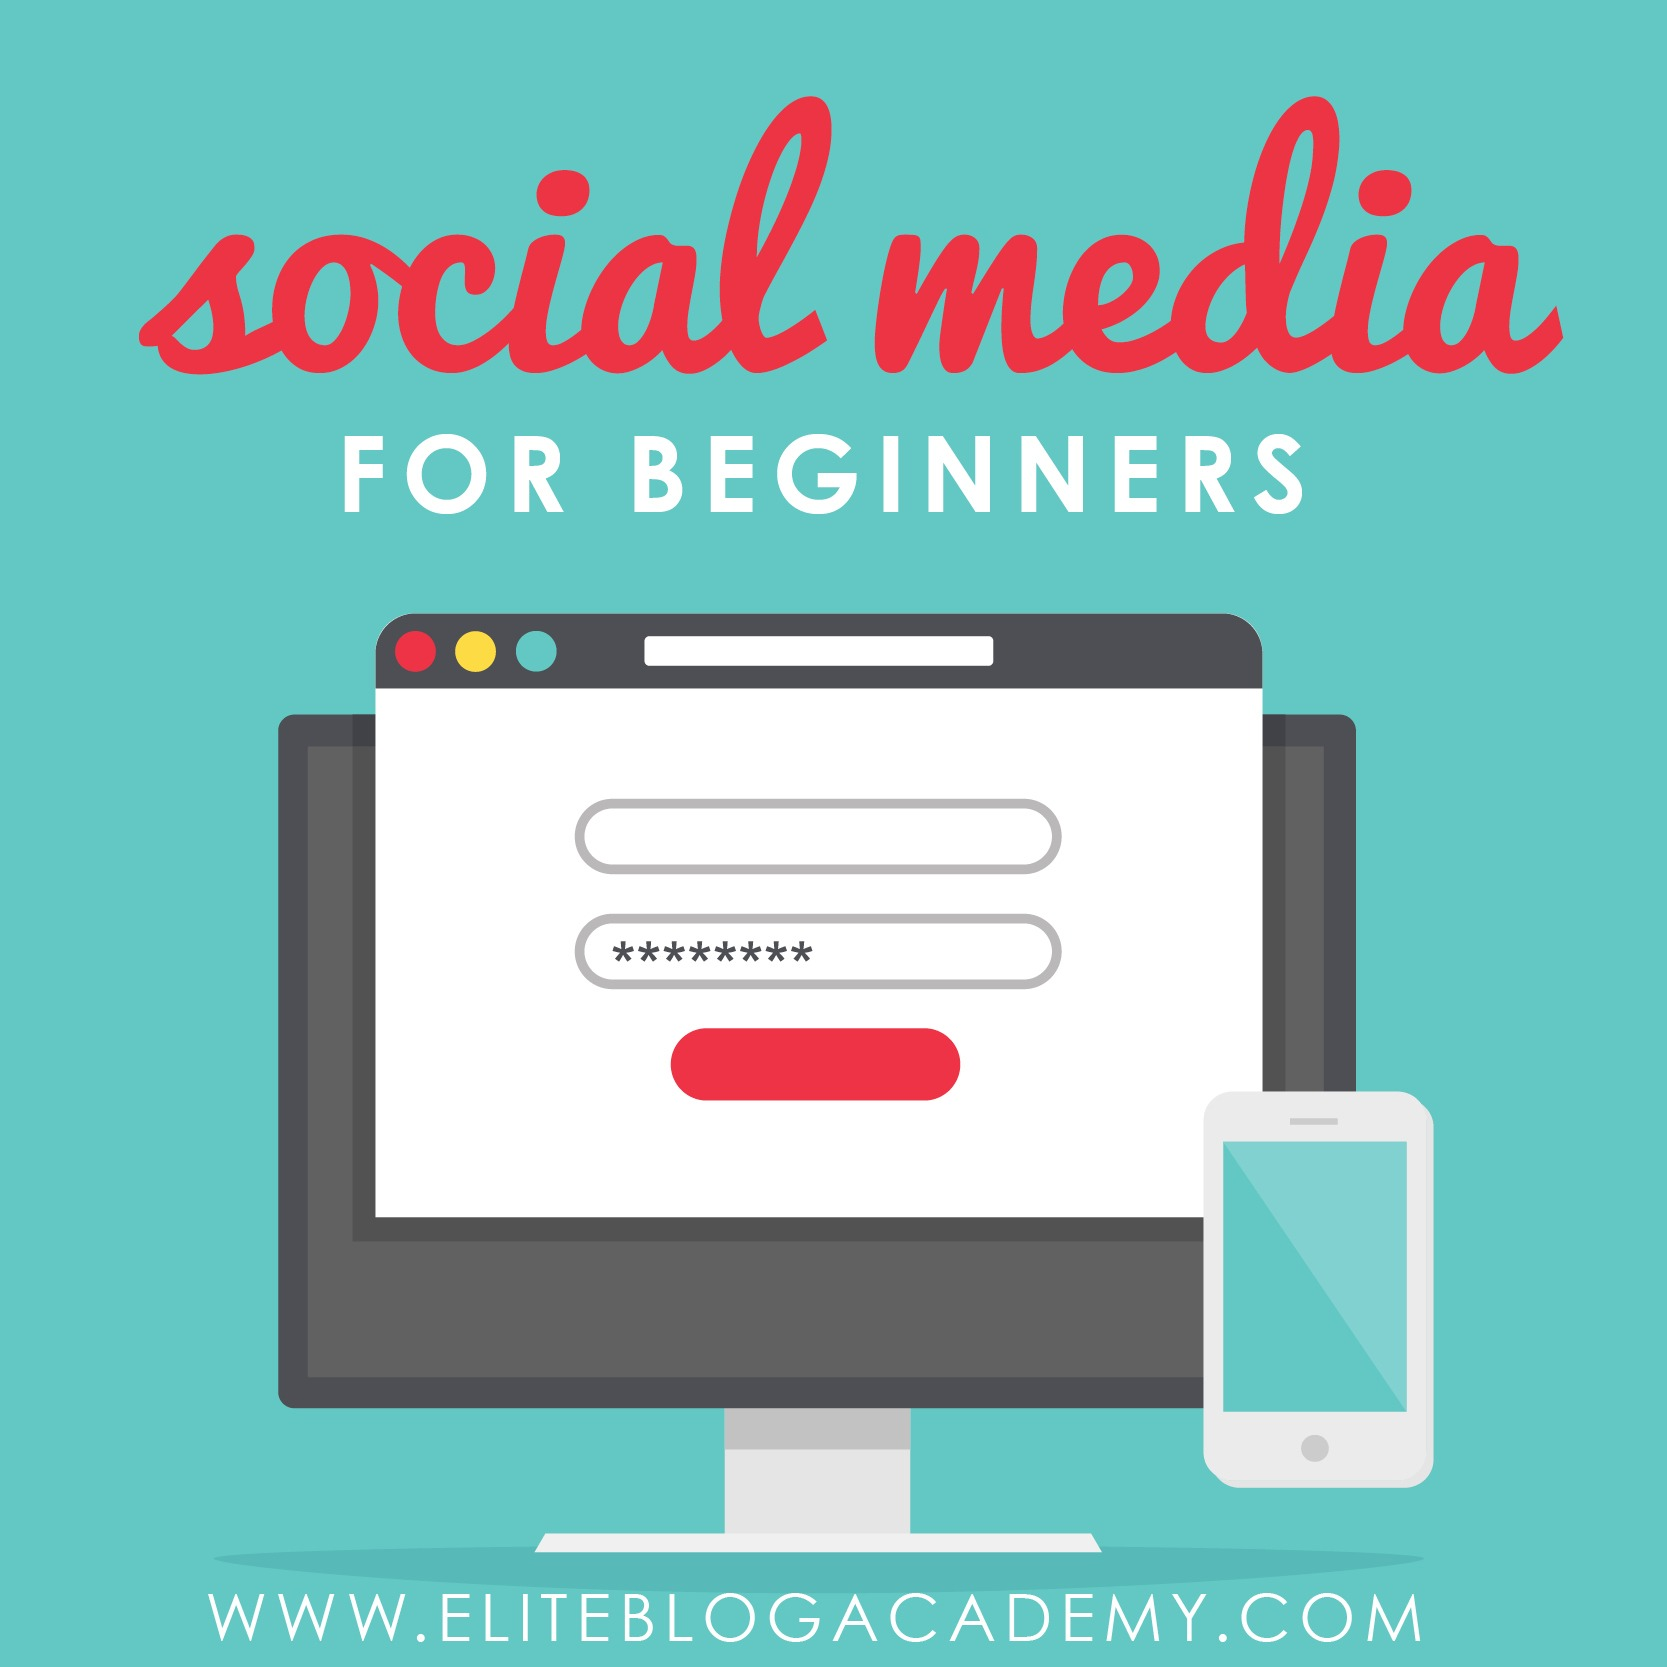 How important is social media at the beginning of your blogging business? While you definitely want creating great content to be at the top of your priorities, there are some things you should do on social media right away! Don't miss this post to find out how to handle social media for beginners.  #socialmediatips #blogging #socialmedia